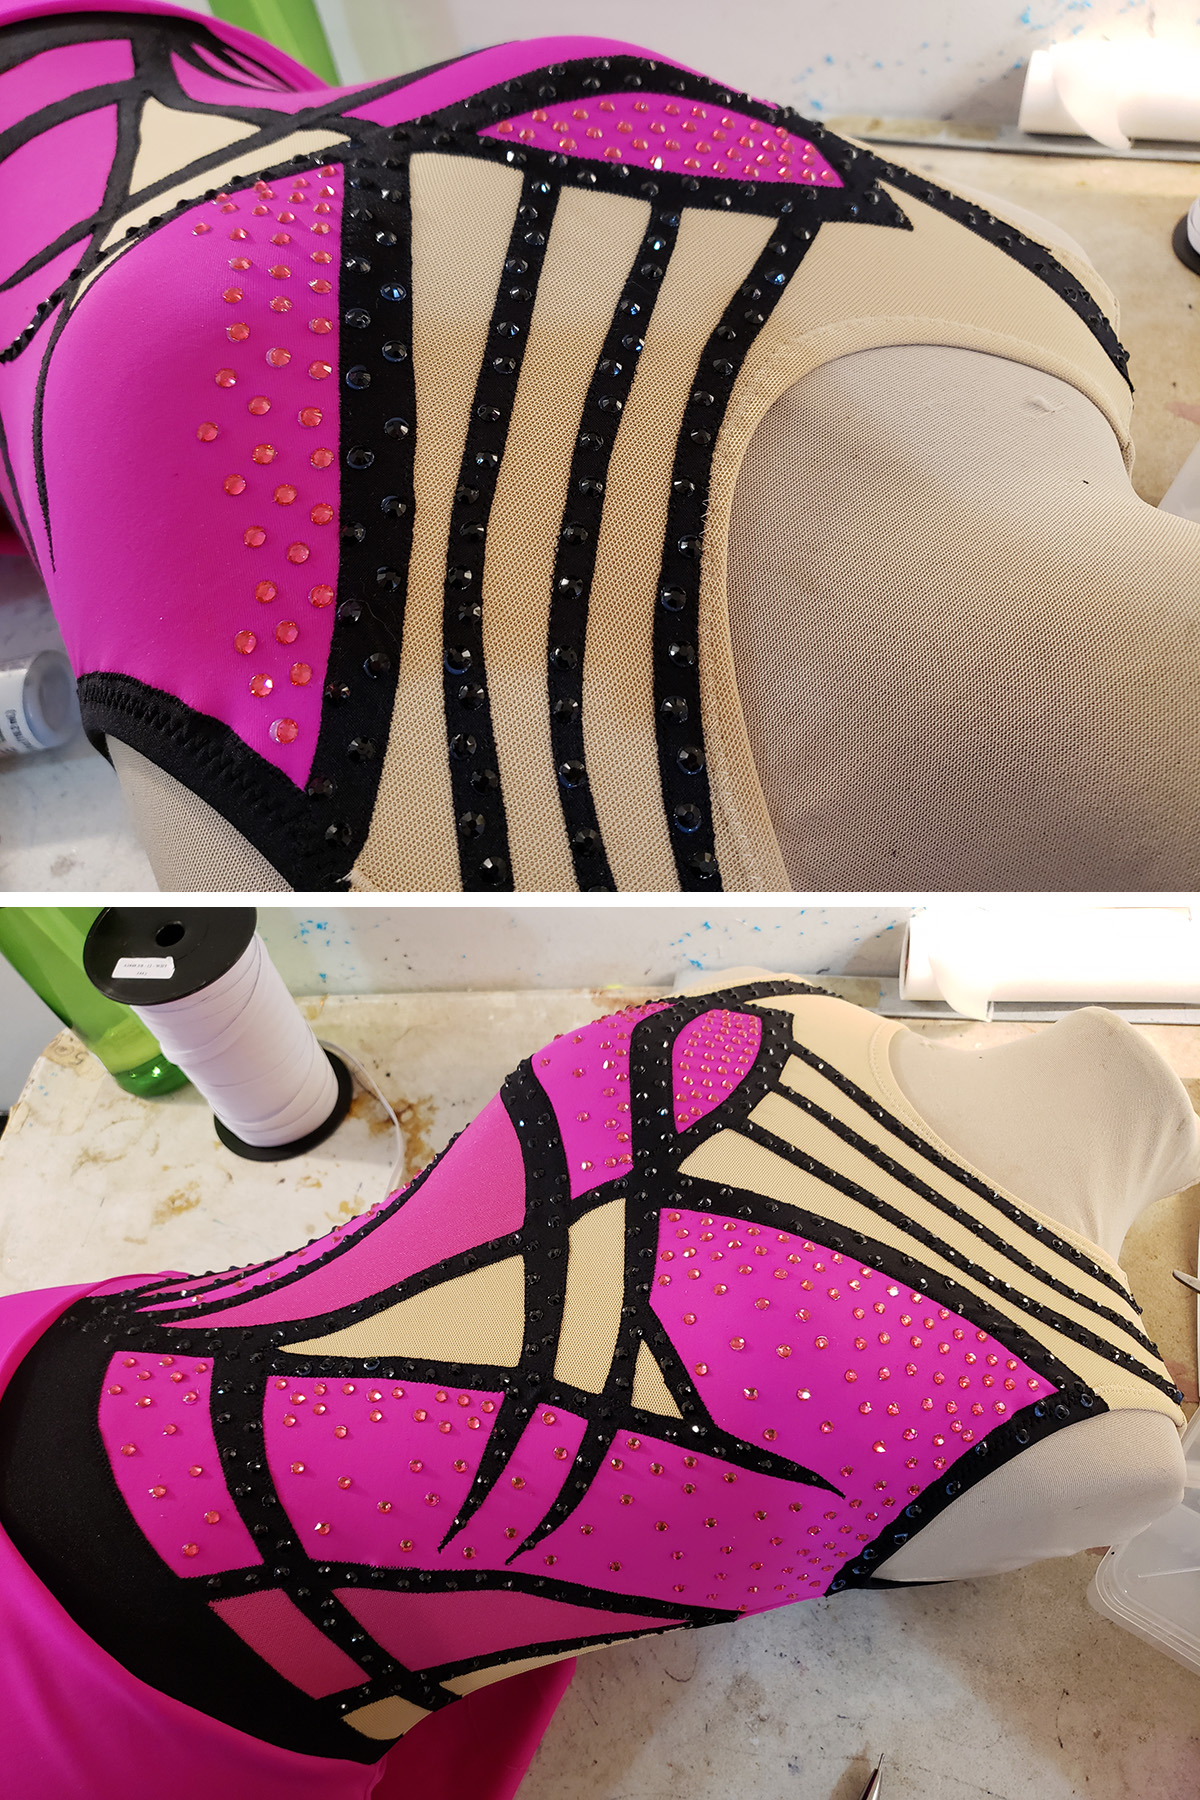 A two part compilation image showing the pink and black skating dress on a beige coloured dress form. Crystals have been applied to the pink and black spandex sections.